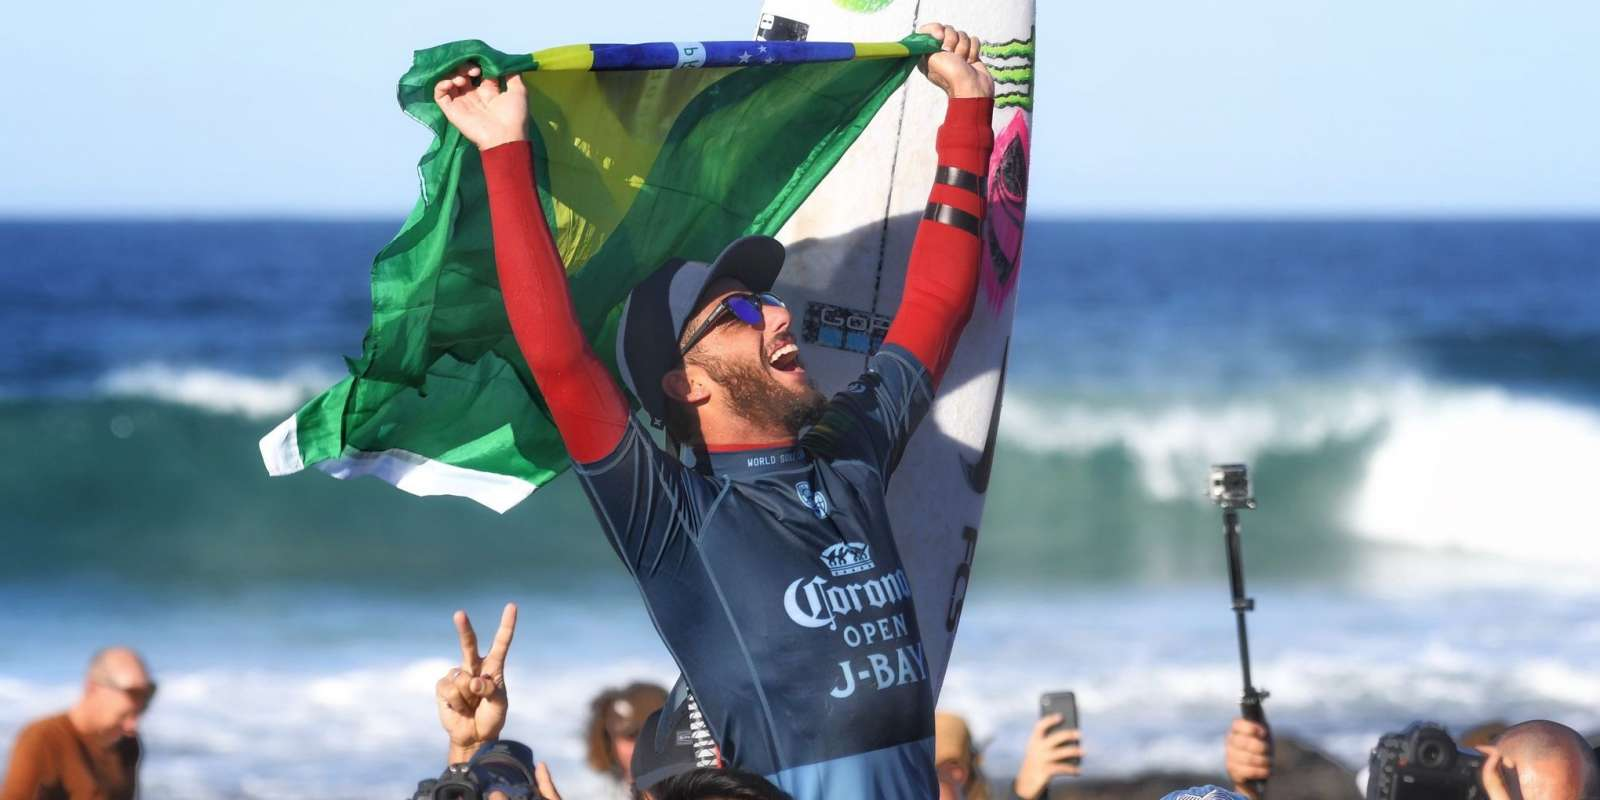 Shots of Felipe Toledo's win at Corona Open J Bay